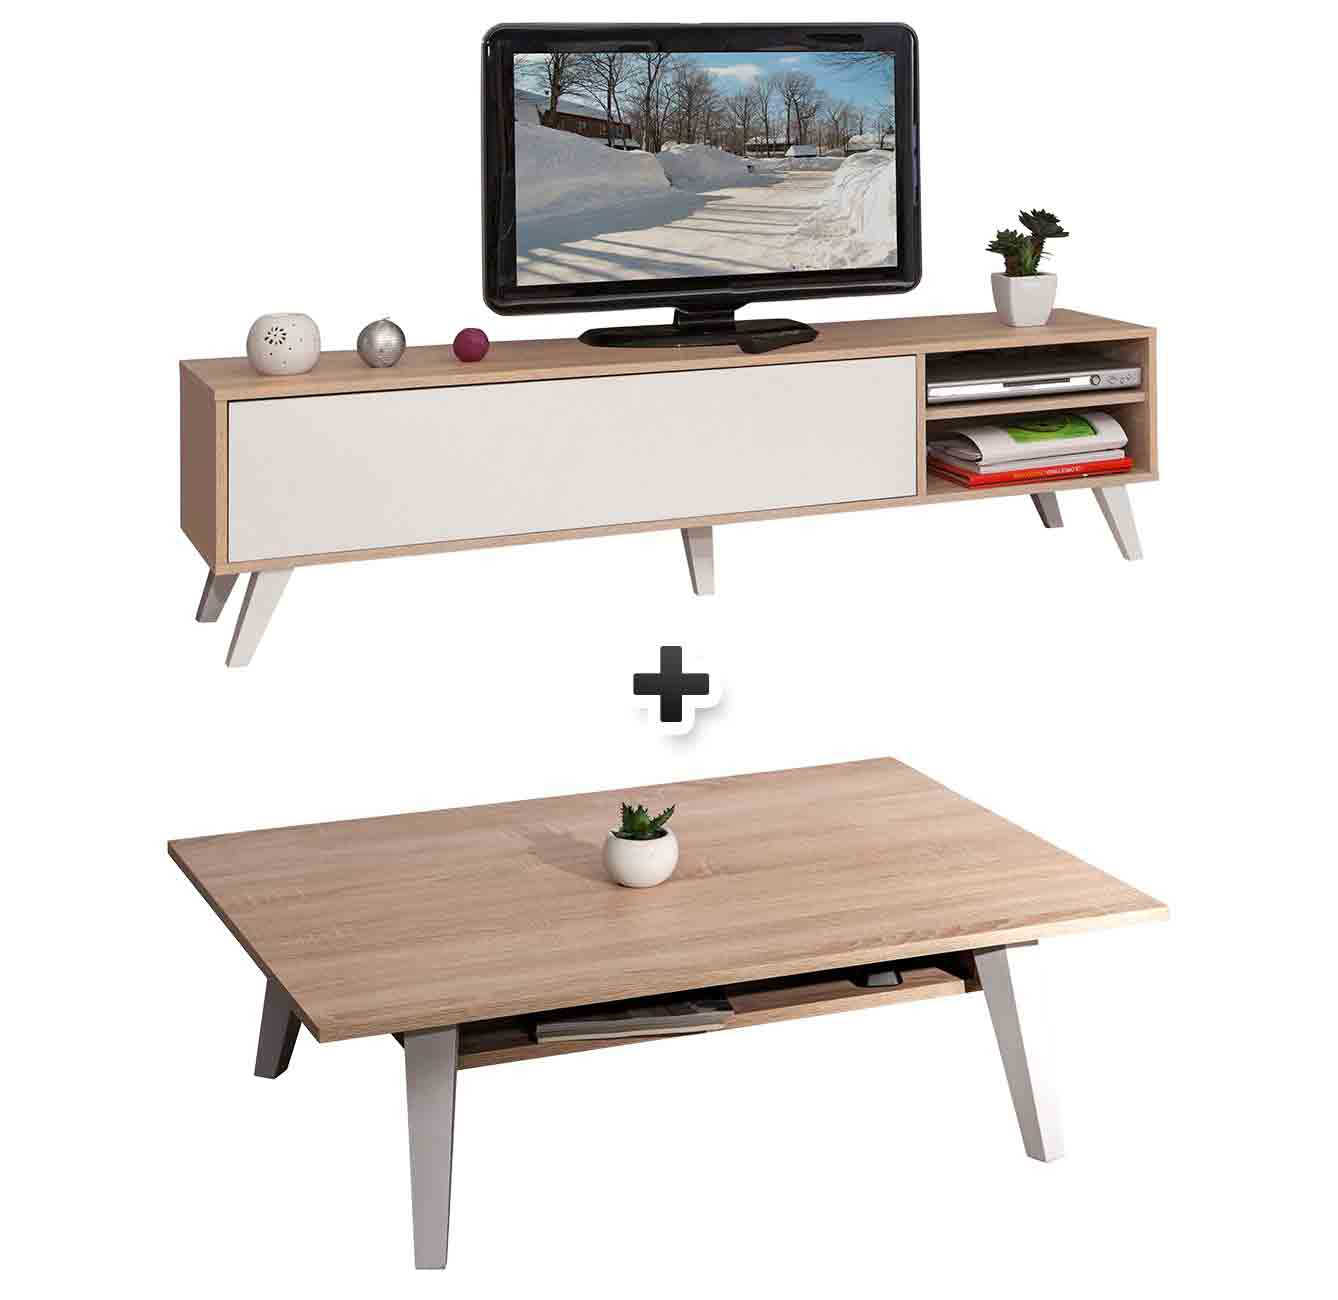 - Meuble TV + table basse COSMOS chêne et blanc